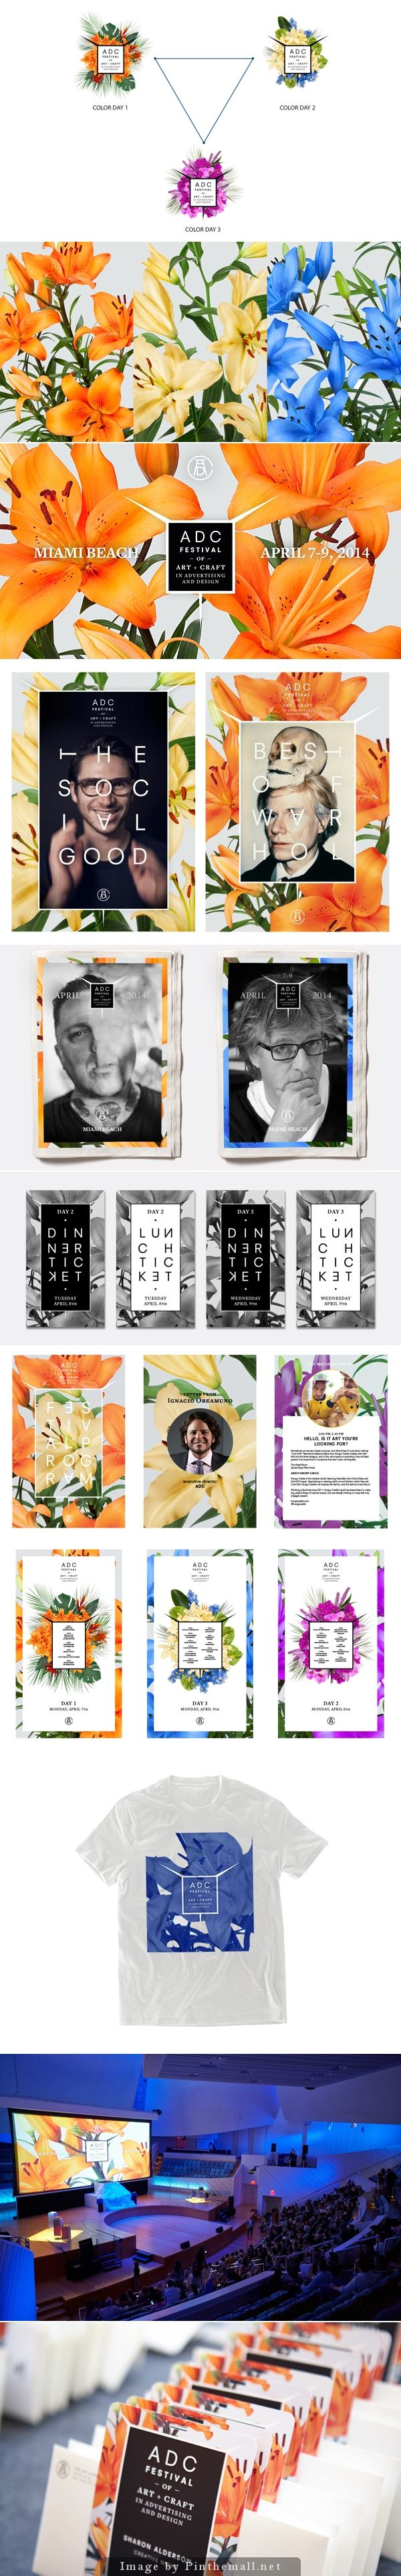 Beautiful identity, love the colors and use of flowers. The posters are amazing too. Art Directors Club Festival Campaign